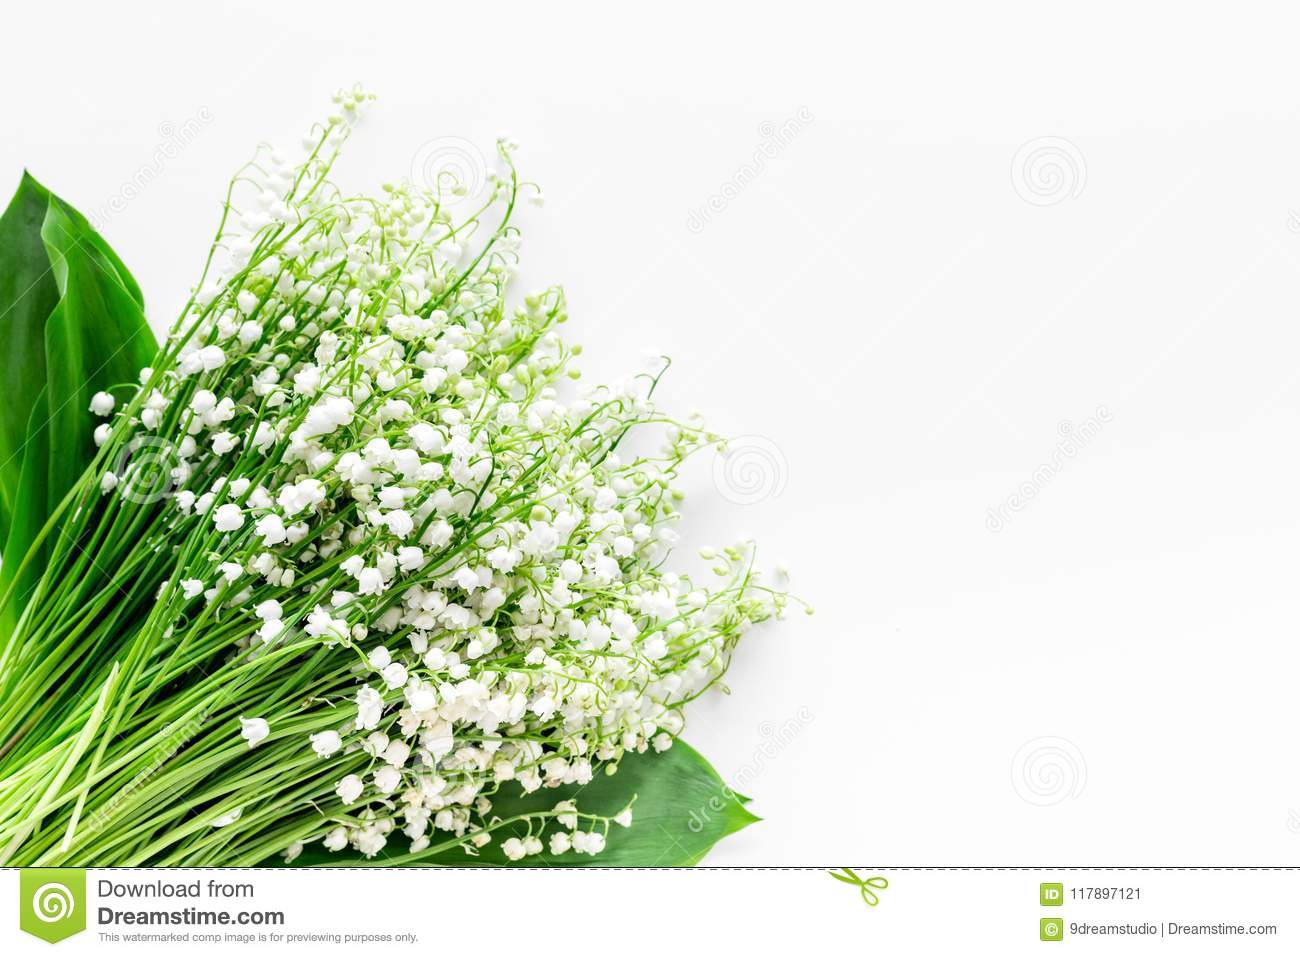 Small and fragrant spring flowers bouqet of lily of the valley small and fragrant spring flowers bouqet of lily of the valley flowers on white background izmirmasajfo